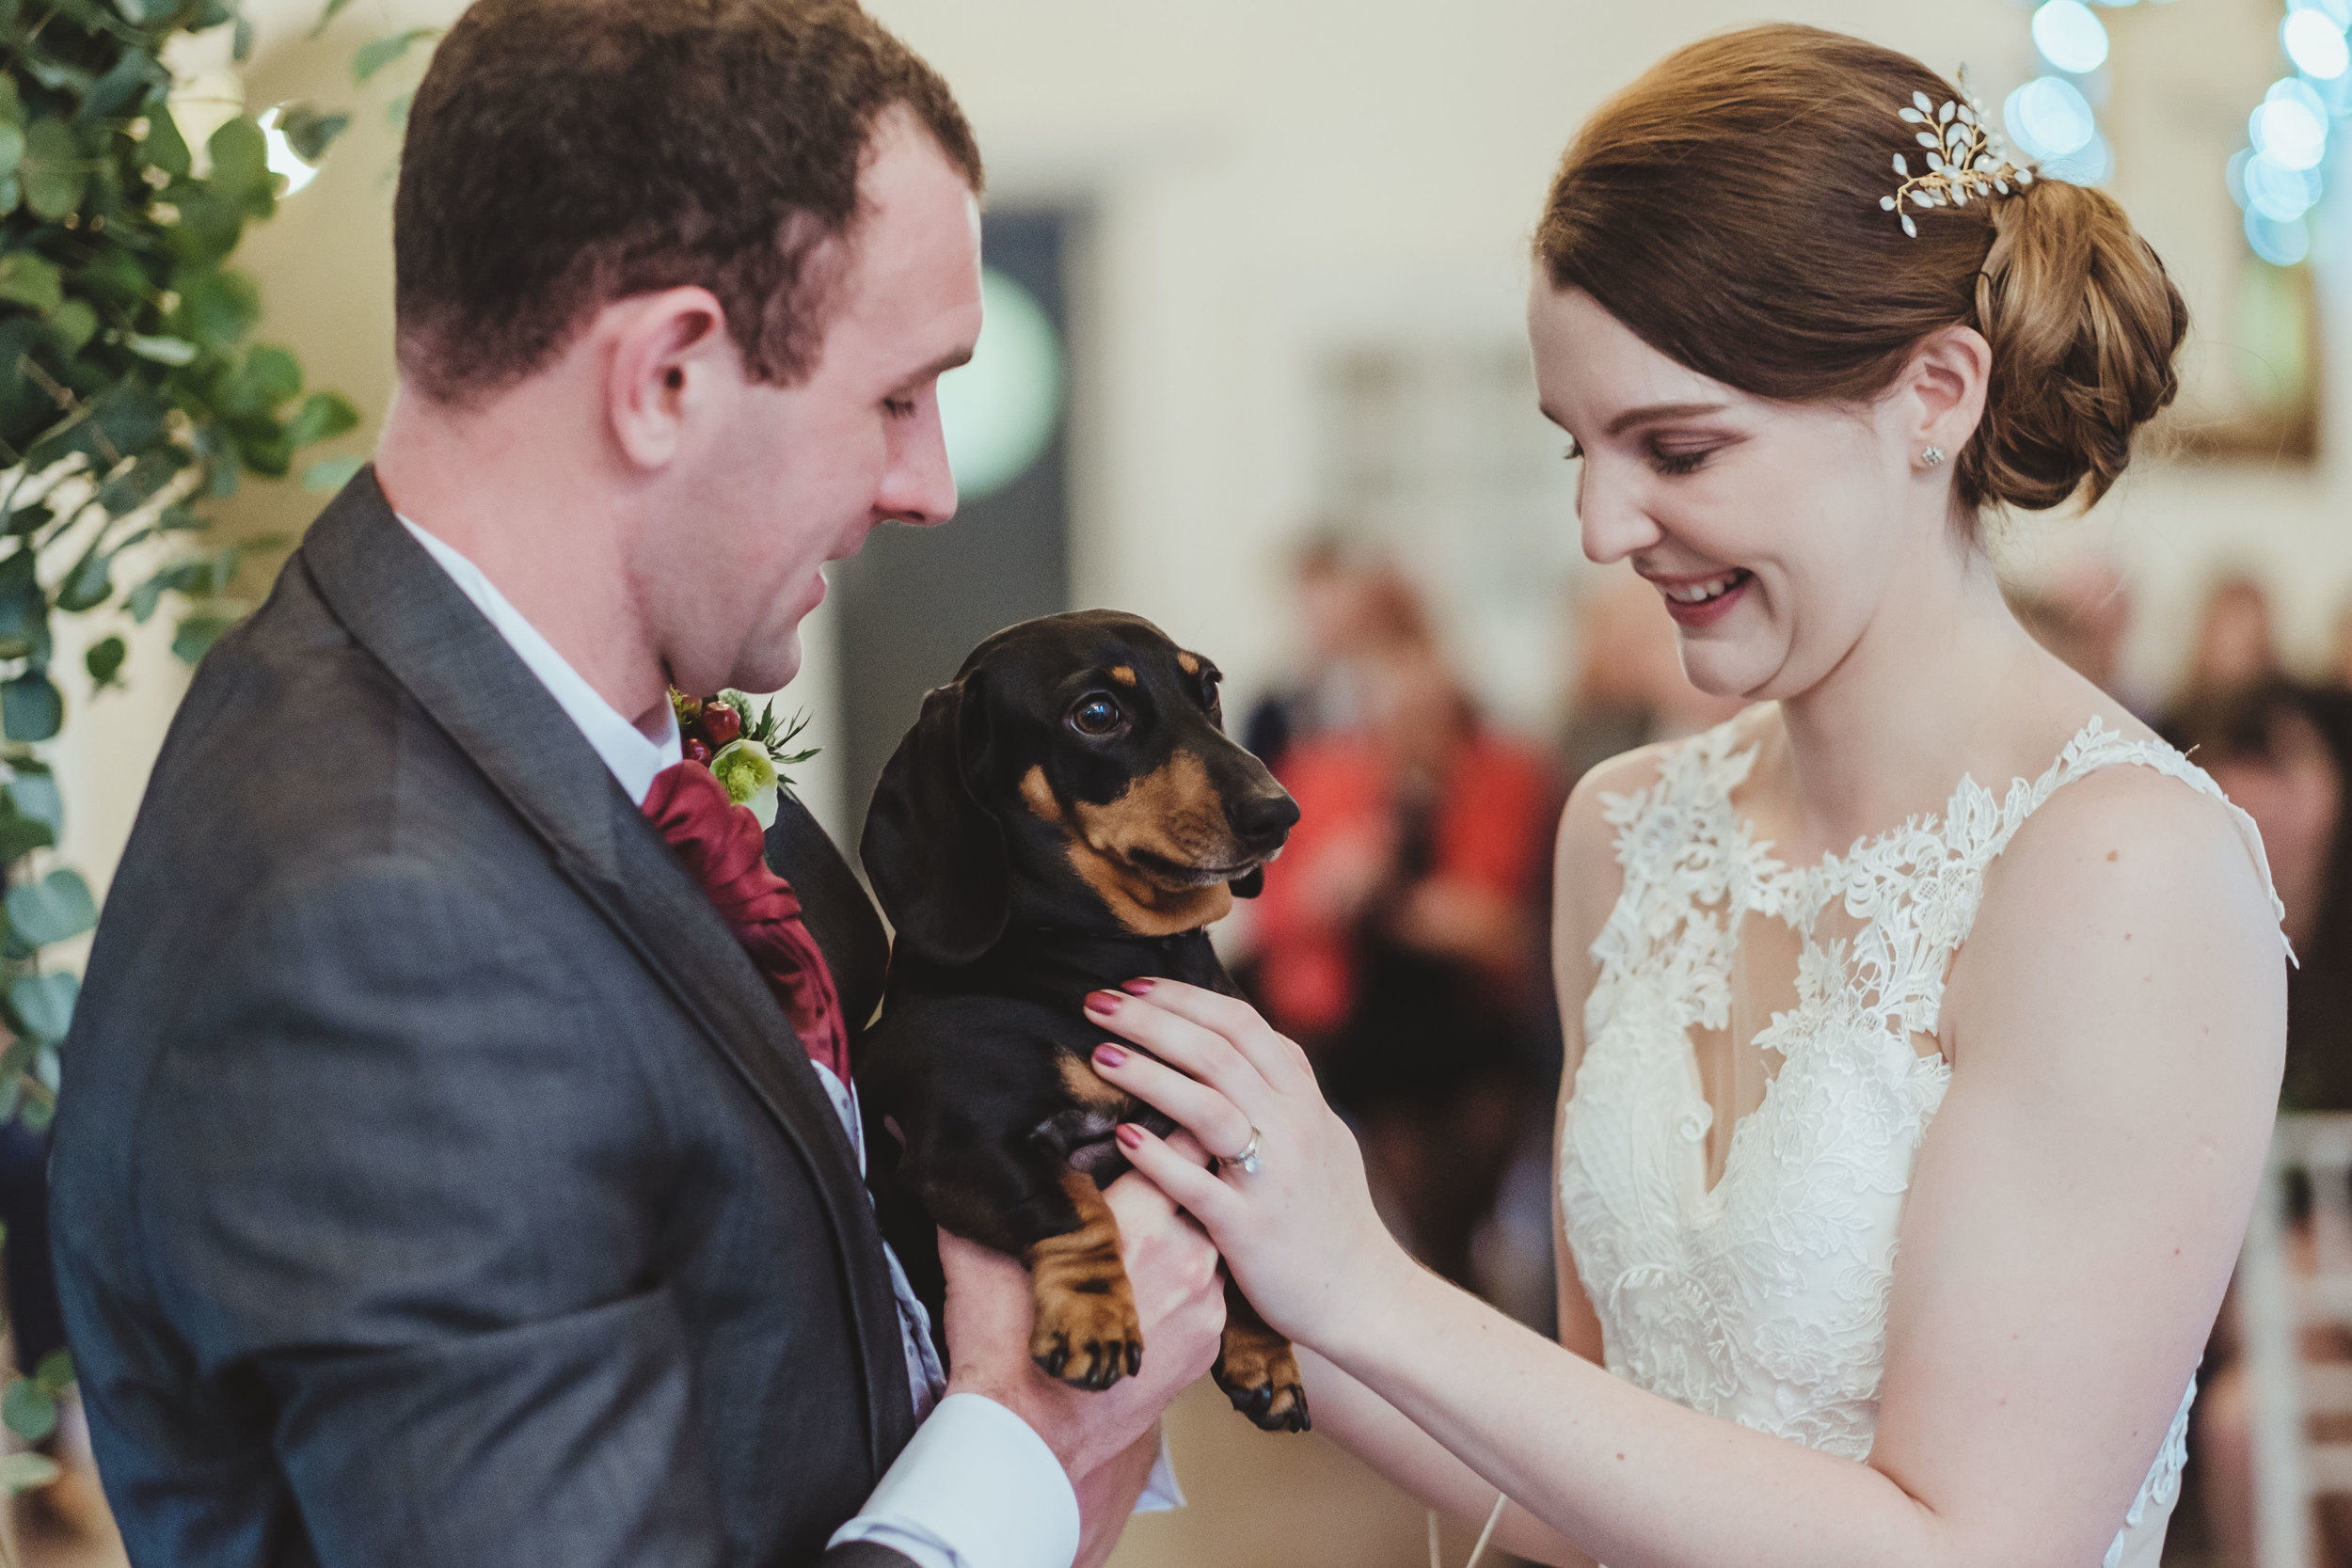 Bride and groom hold dog after the wedding ceremony